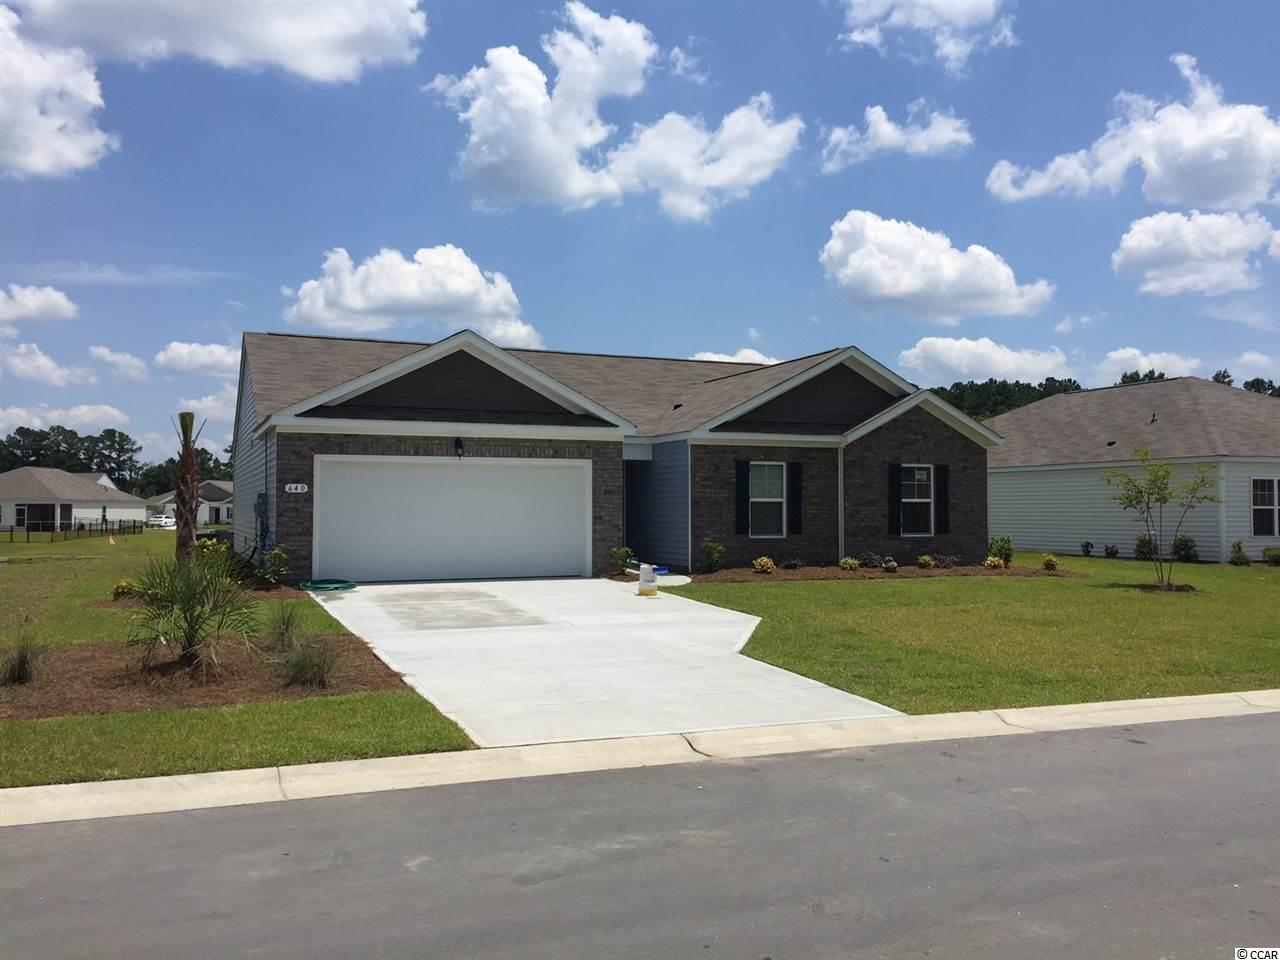 """Limited opportunities remaining!  Anchors Bend is a quiet community in Longs in its final phase.  Jump in the car and you're less than 15 minutes to Cherry Grove Beach or the shopping & restaurants of North Myrtle Beach.  LOCATION, LOCATION, LOCATION!  Close to everything, but outside of the hustle and bustle!  IT'S A LIFESTYLE!  Location is fantastic for families, shaggers, & beach lovers.  ENJOY LIFE!  Pool & amenity center with workout room included in the cost of the HOA.  This would make a fabulous secondary or primary home.  Don't just vacation here – live here!  The most amazing walk-in closet you'll see!  This is the Alston plan: a spacious 3 bedroom, 2 bath ranch. Wood-look luxury plank flooring is a low-maintenance alternative to hardwood, and is located throughout the home, including wet areas (carpet in the bedrooms). Open layout that offers a 17' x 19' living room and separate laundry area.  Large owner's suite and bath with a 5 ft. shower, double vanity and sink and an enormous walk-in closet. Fabulous pantry, upgraded granite countertops and island with breakfast bar. Upgraded pendant lighting and 36"""" staggered maple cabinets in kitchen. Stainless kitchen appliances are standard. Large owner's suite and bath with a 5 ft. shower, double vanity & sinks, and an enormous walk-in closet. Sliding doors lead to an 8x17 covered porch overlooking a beautiful pond!  **PLEASE NOTE THIS HOME IS UNDER CONSTRUCTION AND THE PICTURES OF THE INTERIOR ARE OF A SIMILAR HOME IN THE COMMUNITY, PICTURES WILL BE UPDATED ONCE THE HOME IS COMPLETE.  ESTIMATED COMPLETION: JUNE 2018."""